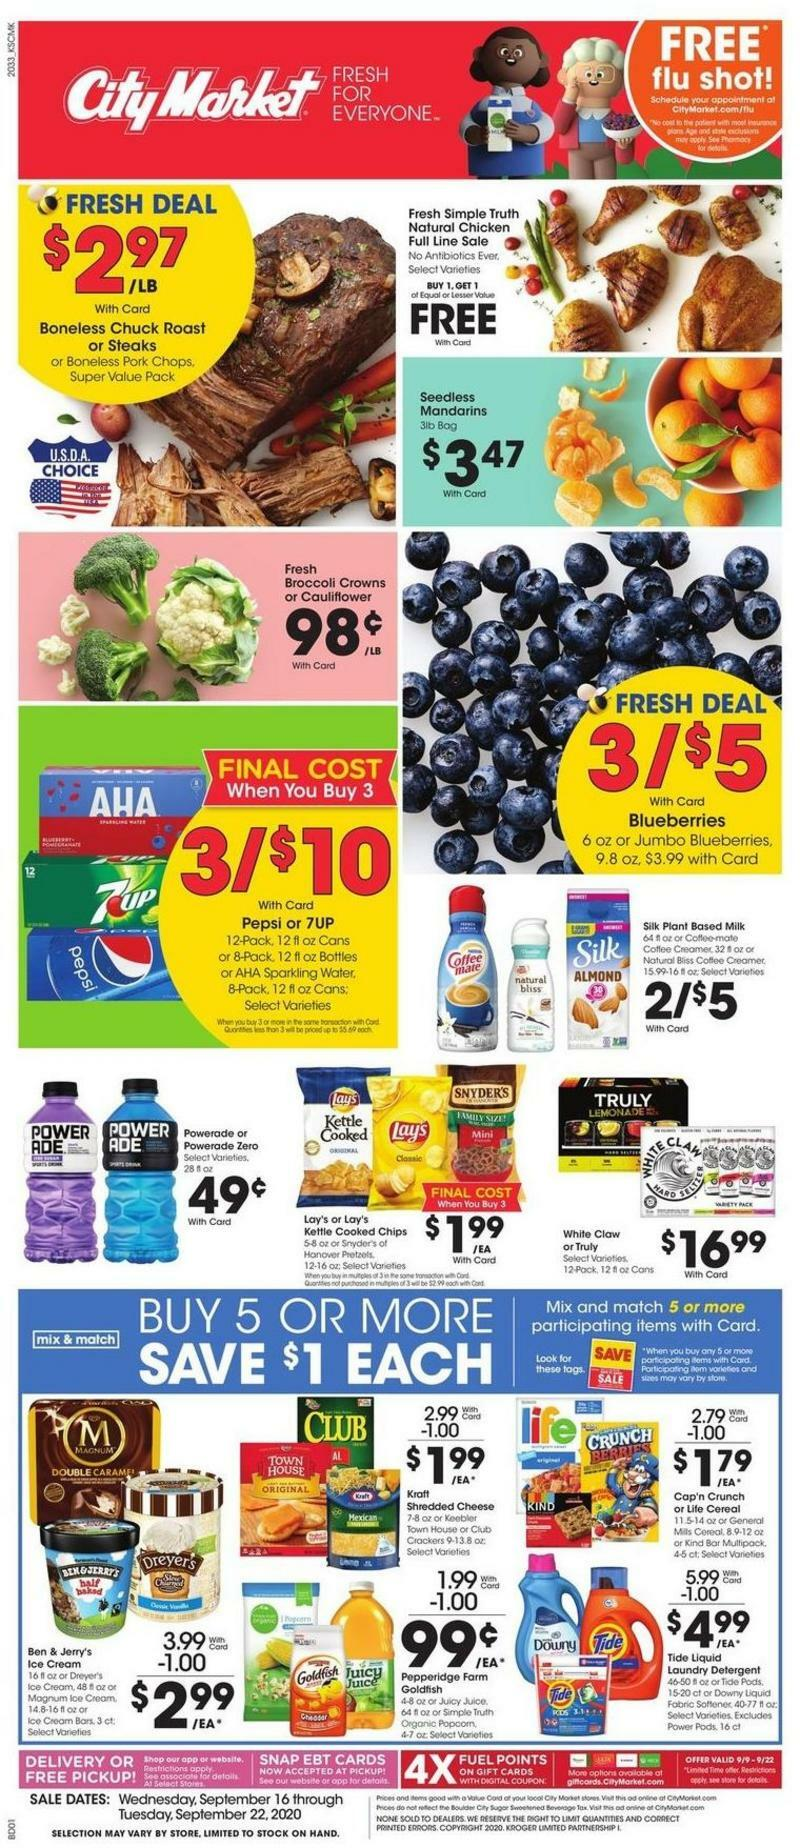 City Market Weekly Ad from September 16